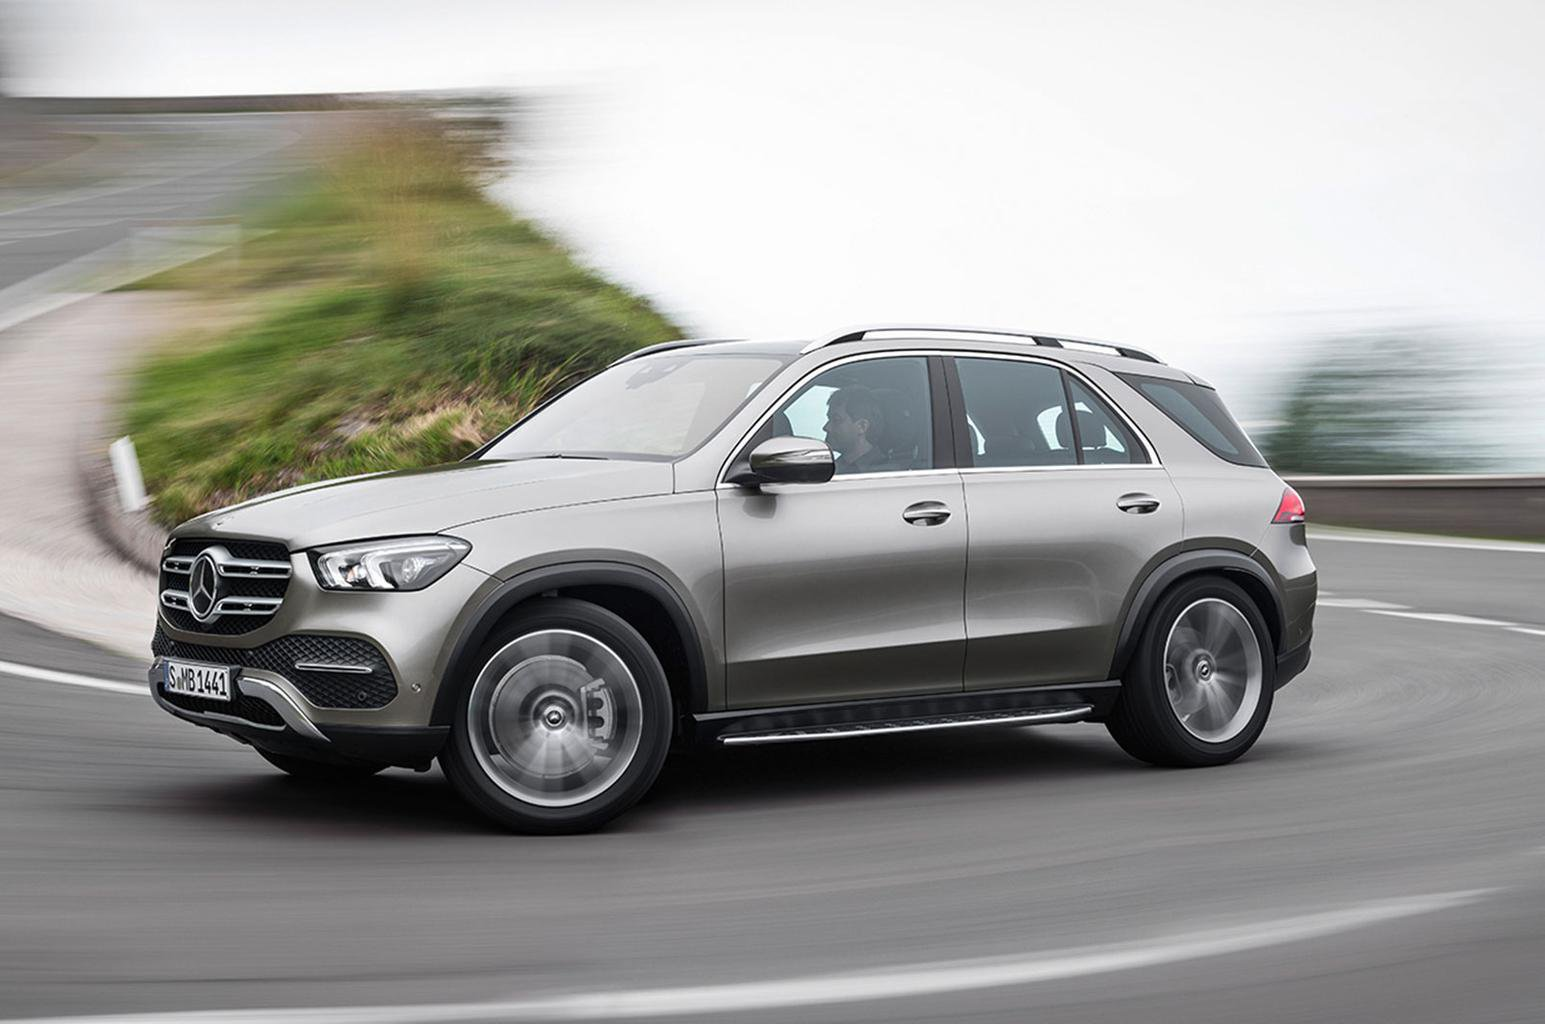 2019 Mercedes GLE revealed – price, specs and release date